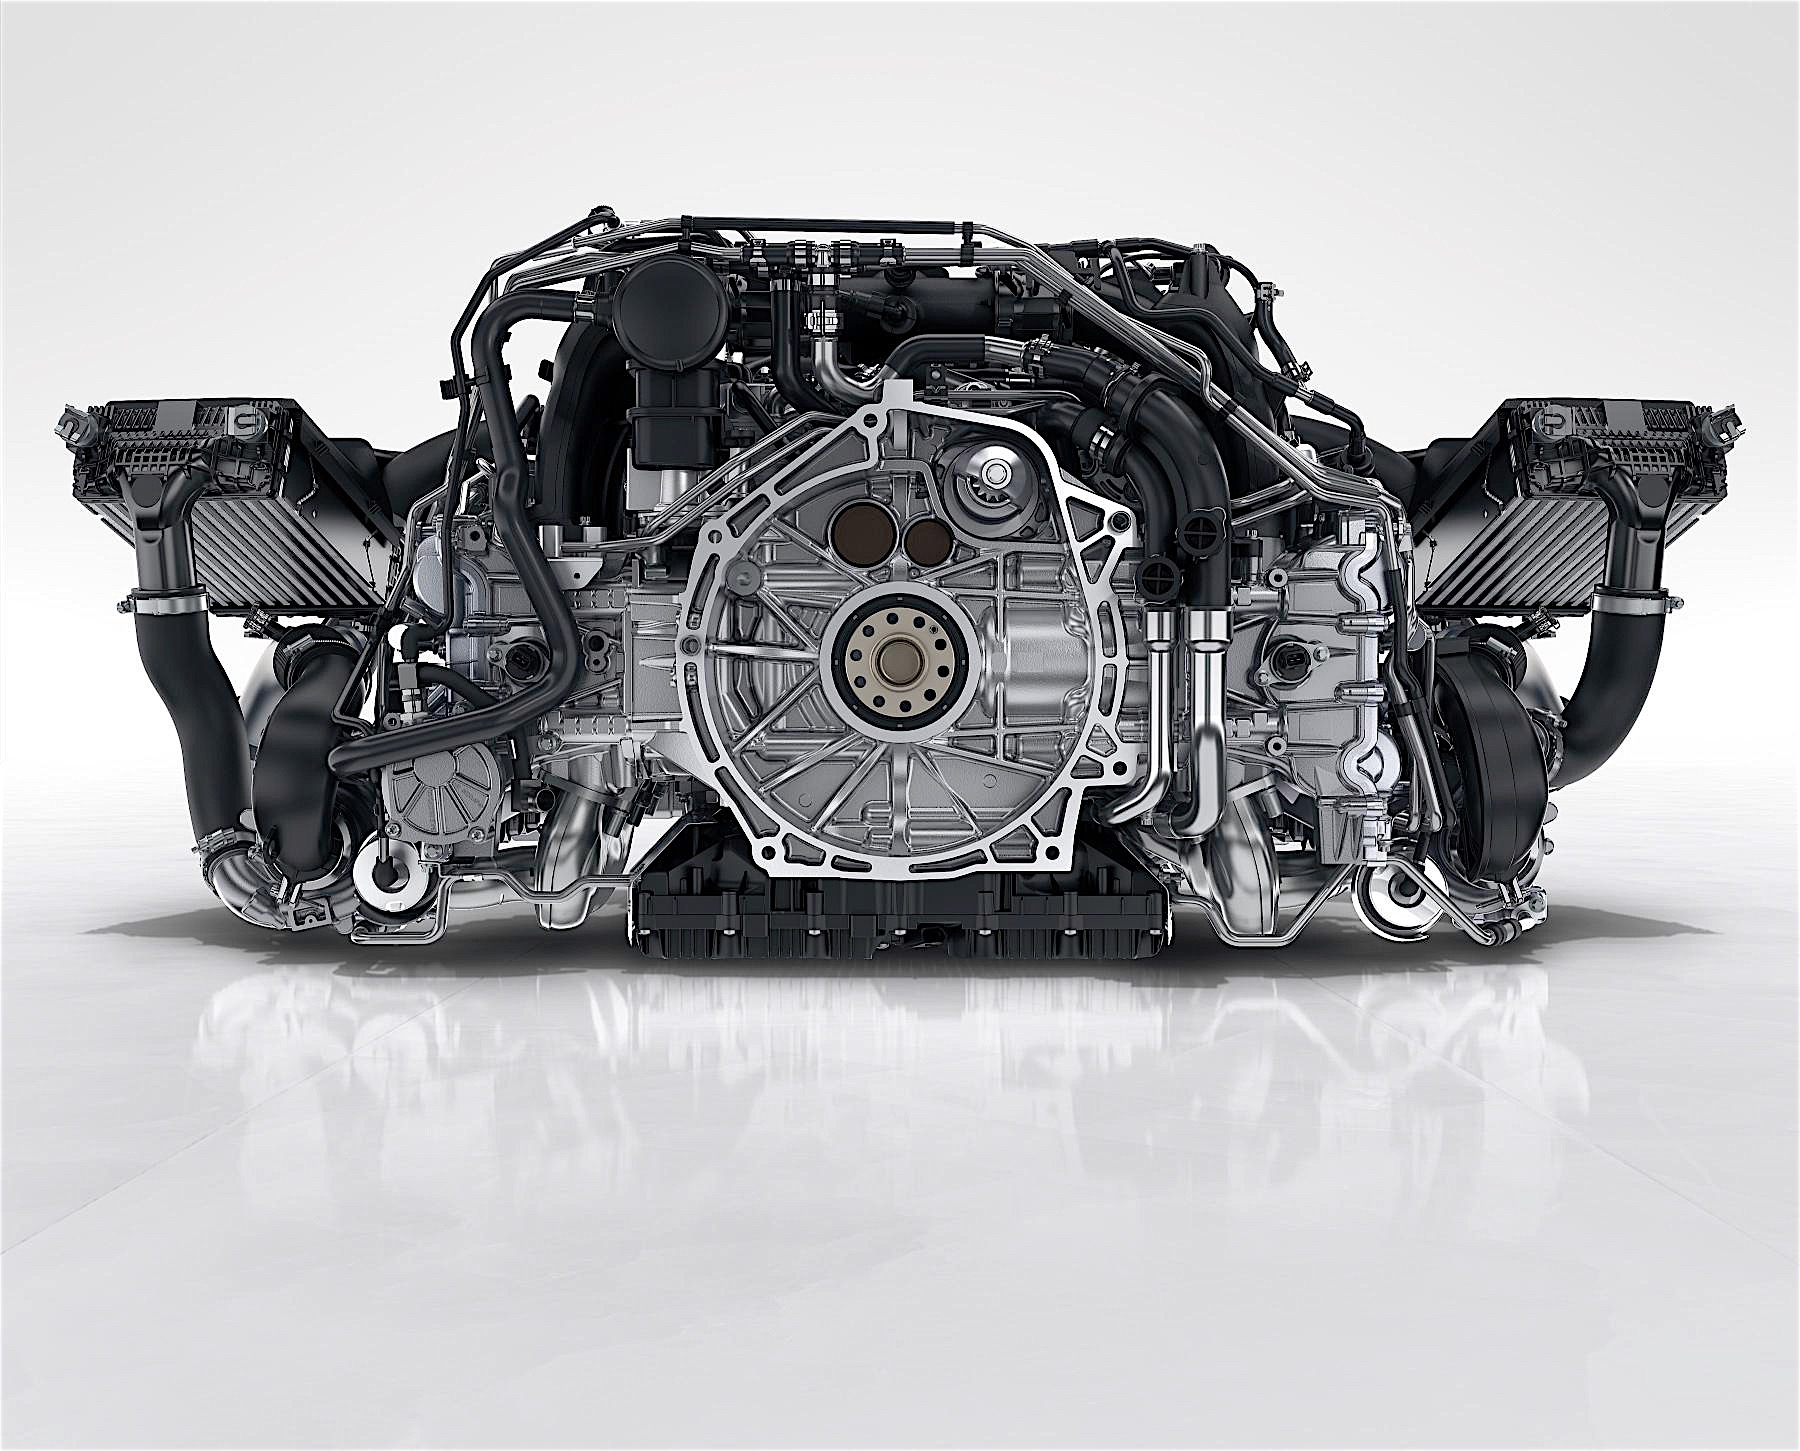 Porsche Engine Wallpaper as well Pic further Porsche Engine Diagram Porsche Oil Cooler Fan Operation And Troubleshooting further Turbocabj furthermore . on porsche 964 engine diagram